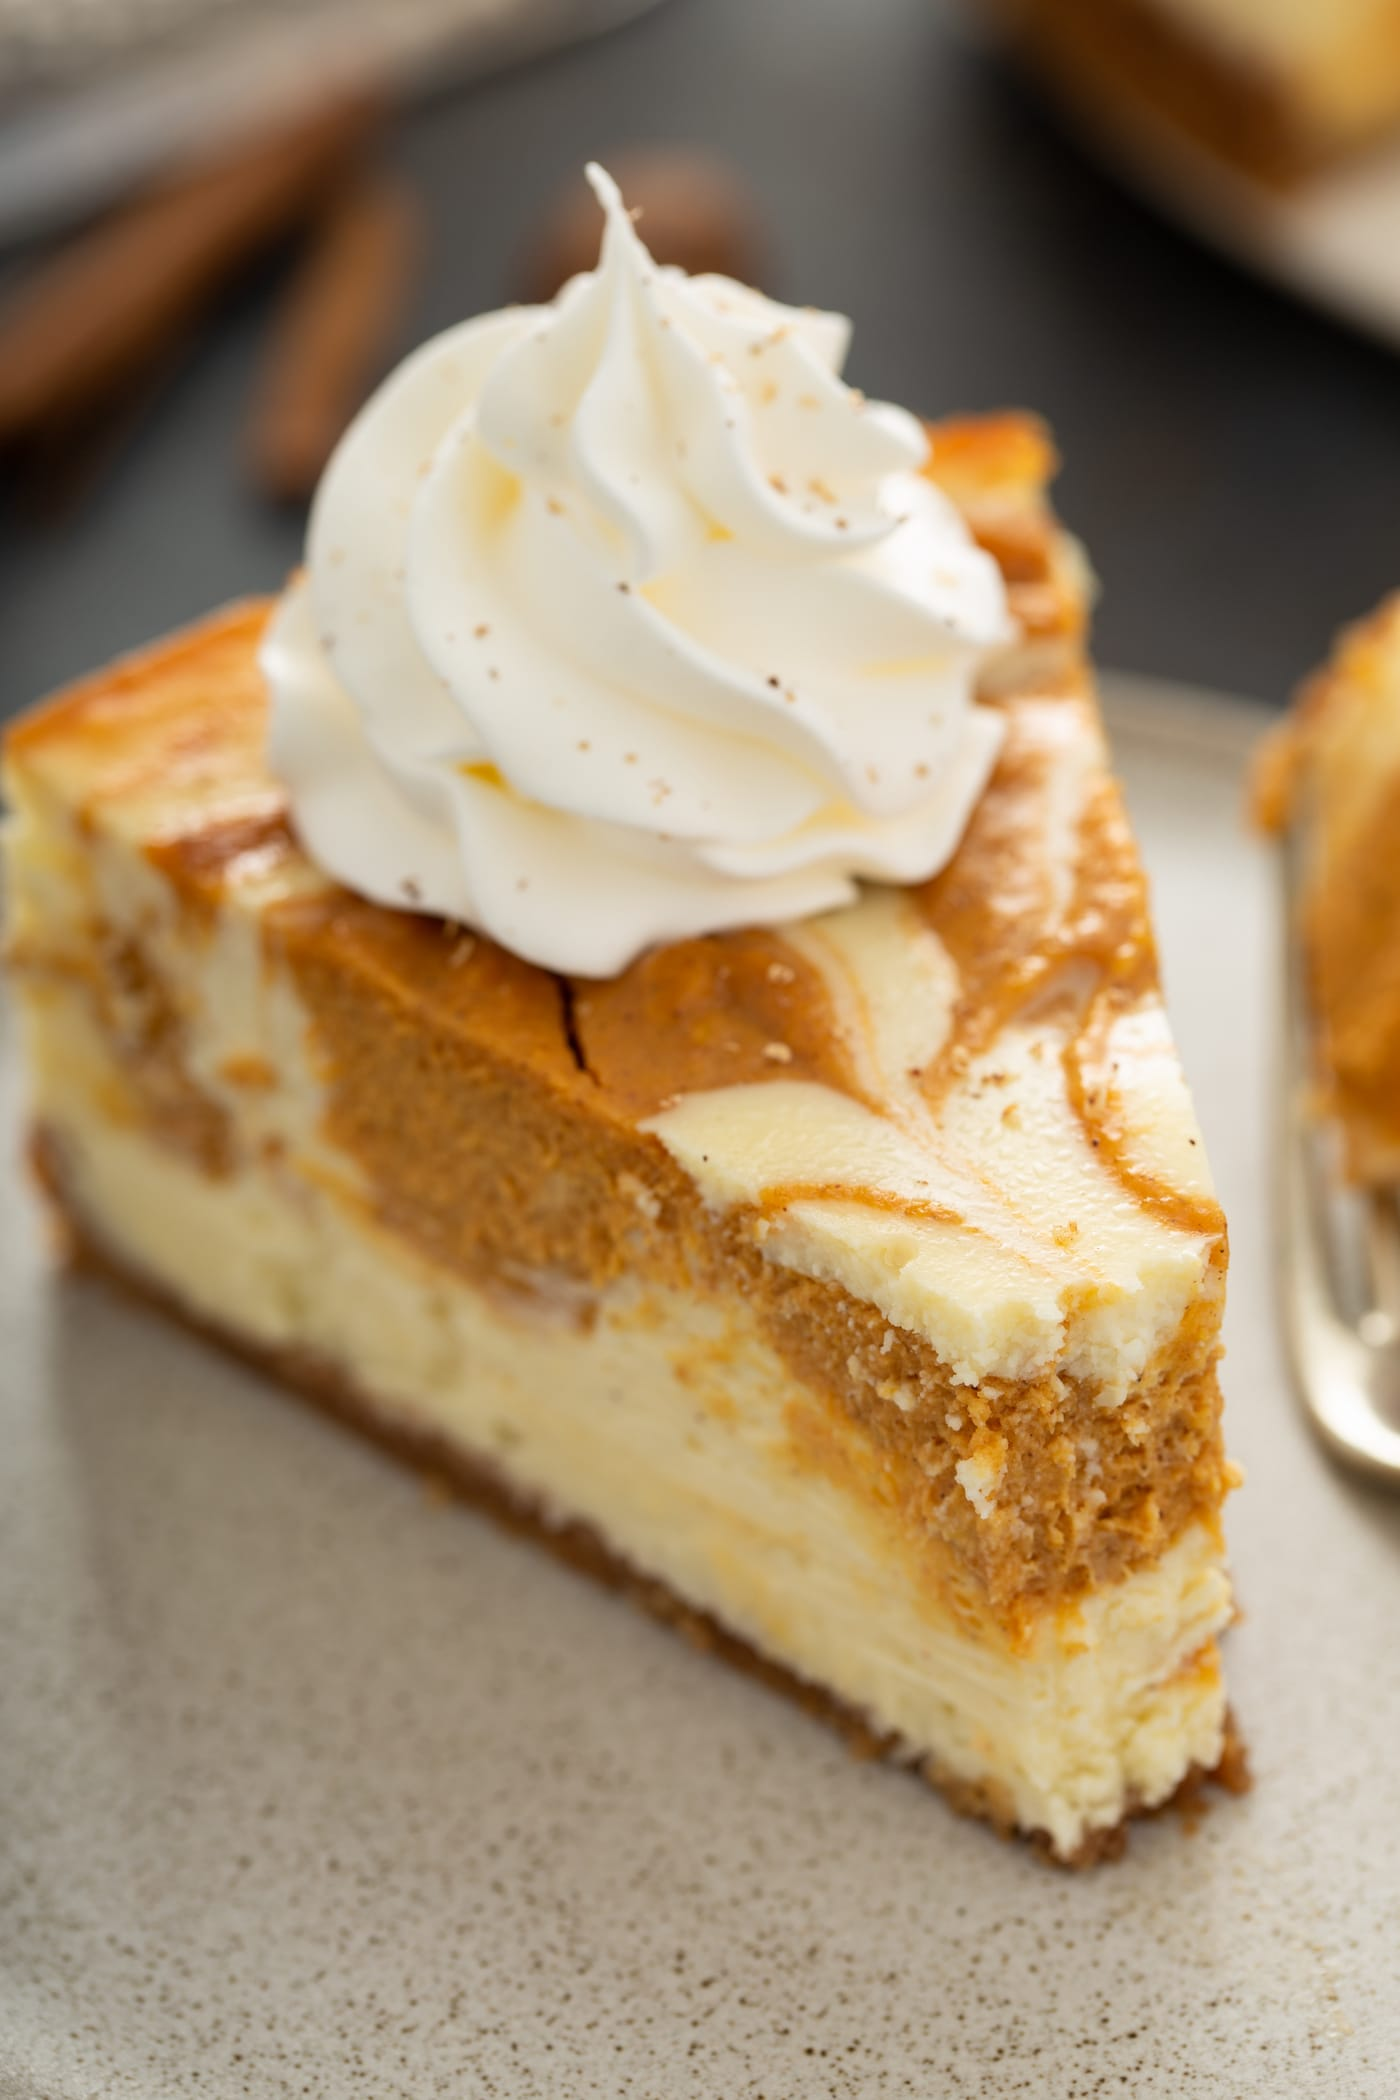 A piece of swirled pumpkin cheesecake on a plate. It is topped with a dollop of whipped cream and a bite has been taken from the point of the slice.